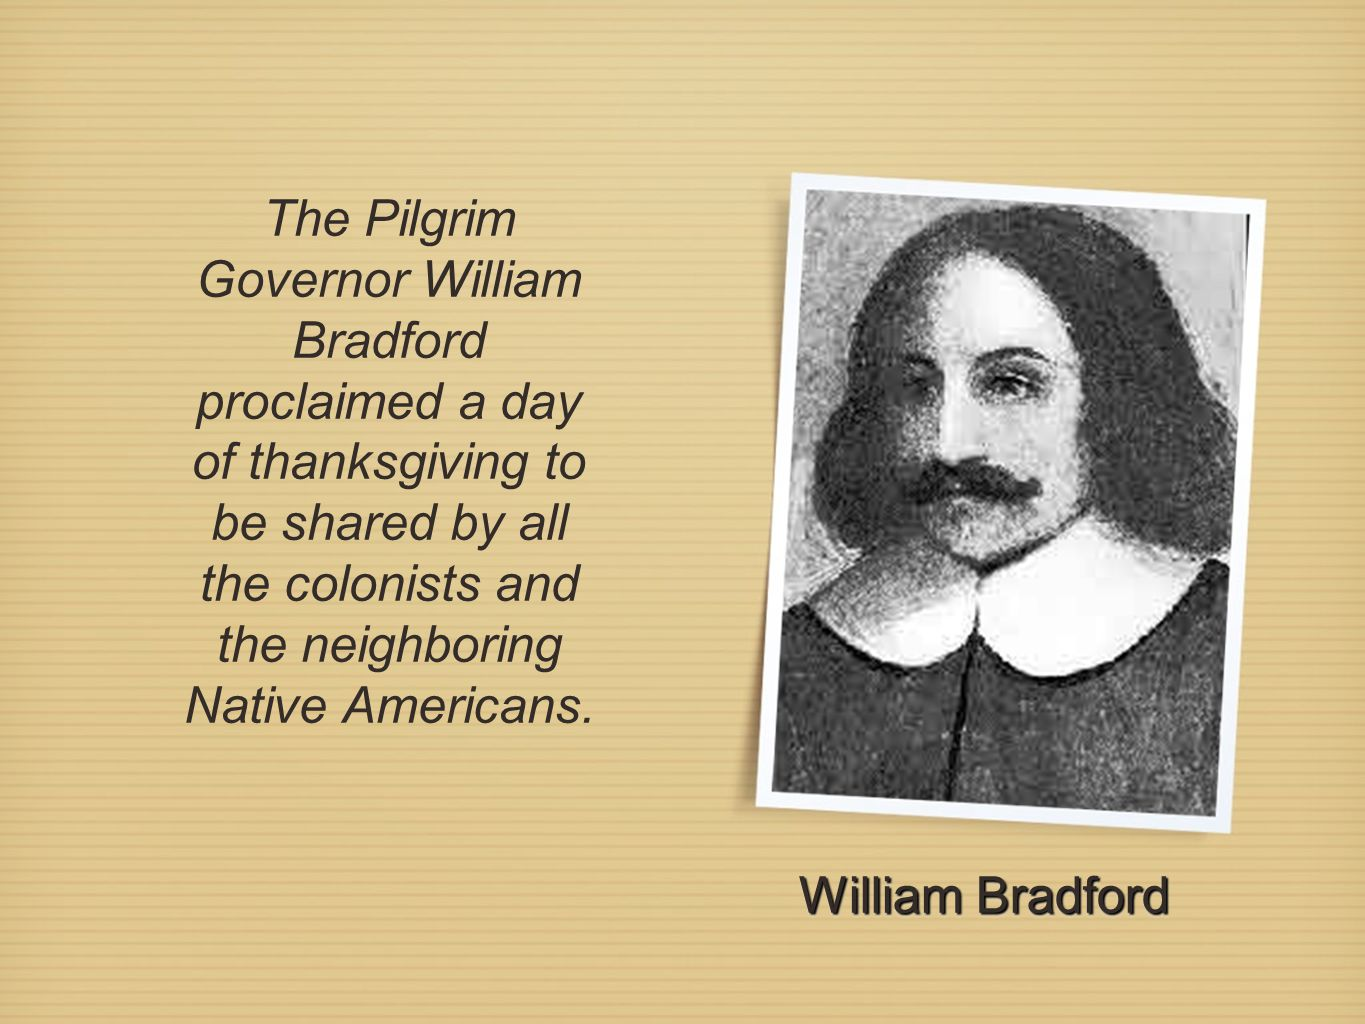 The Pilgrim Governor William Bradford proclaimed a day of thanksgiving to be shared by all the colonists and the neighboring Native Americans. William